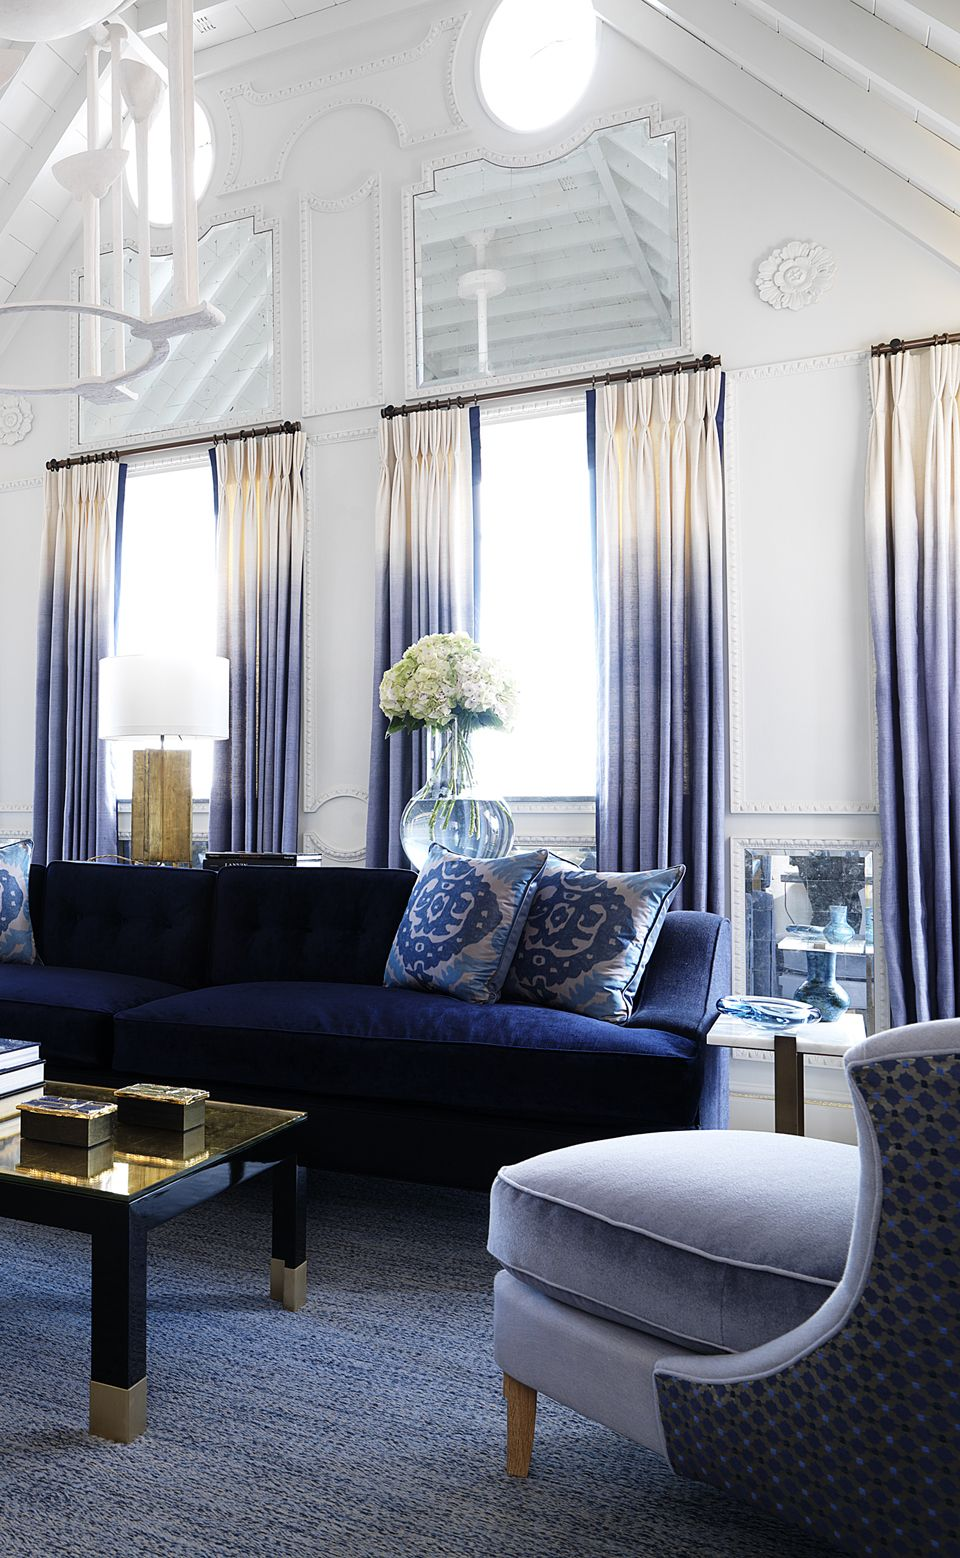 10 Enticing Interiors from 4 Kips Bay Showhouse 2016 Designers